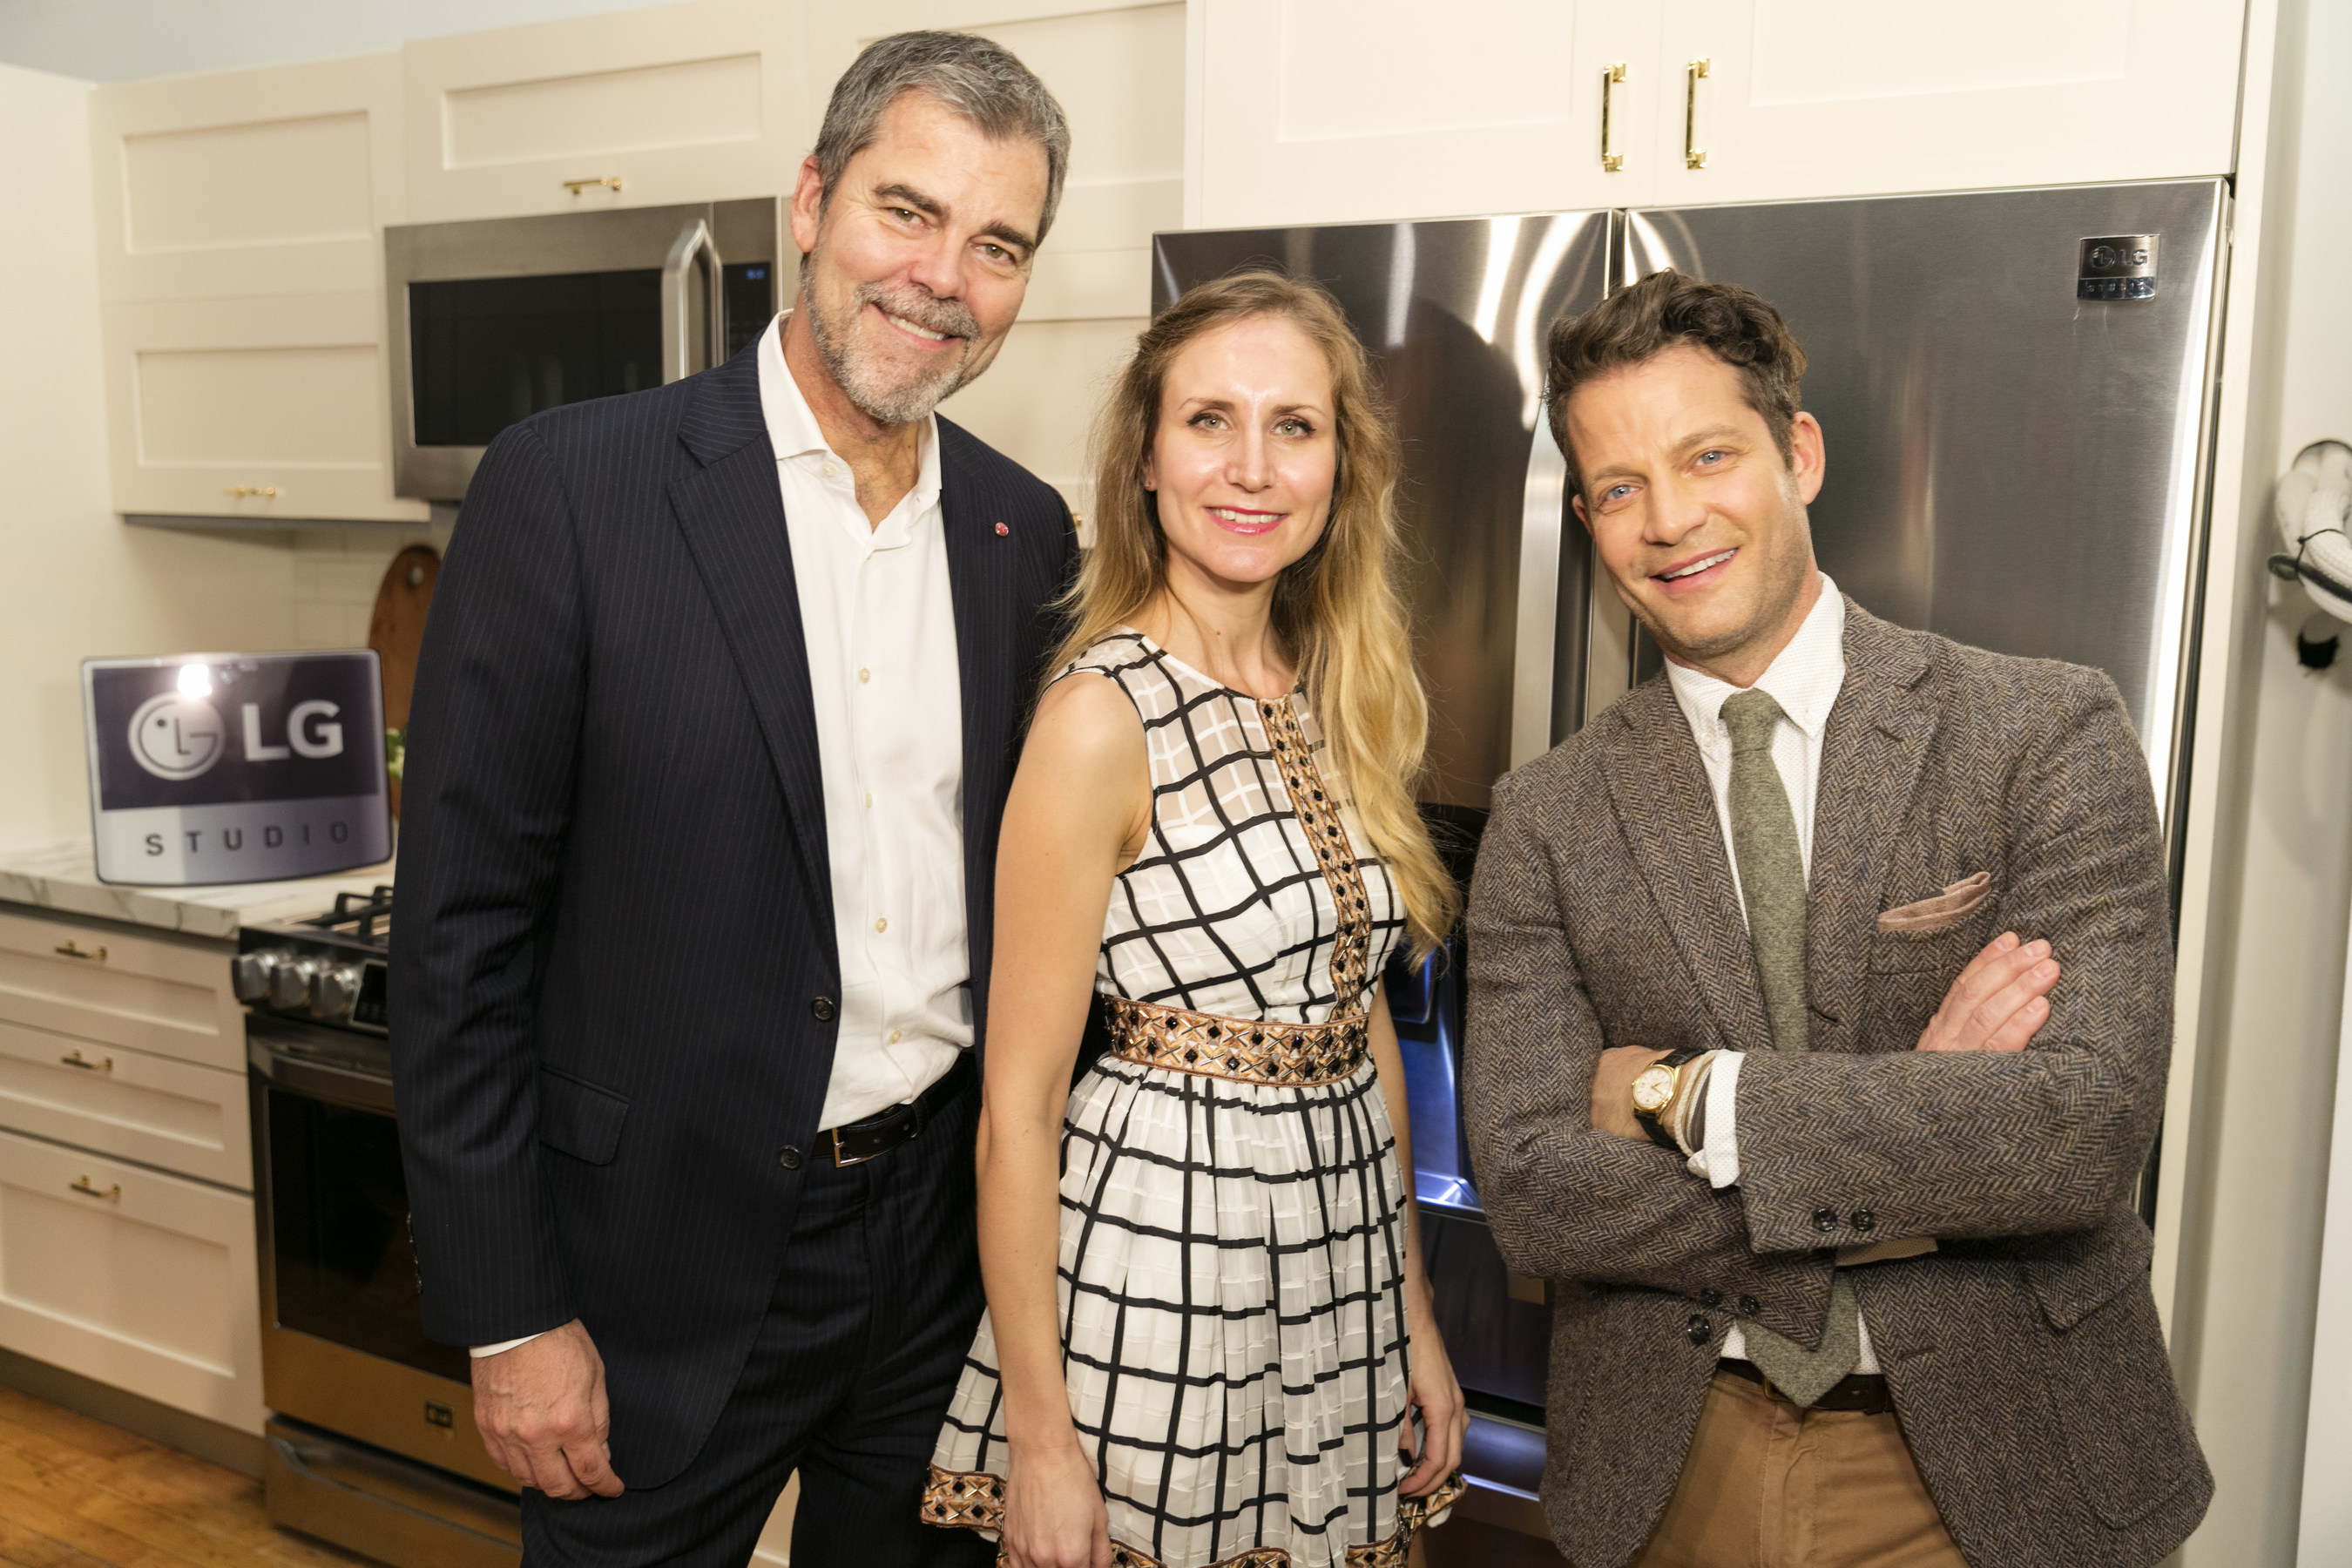 """""""Designed to Inspire"""" LG Studio Kitchen Design Contest grand prize winner, Petya Toncheva, poses with renowned designer and LG Studio Artistic Advisor Nate Berkus and LG Electronics' Vice President of Marketing Dave VanderWaal  at the """"Designed to Inspire"""" event held at The Kitchen at Union Square on Thursday, November 19, 2015. The contest challenged up-and-coming American Society of Interior Designers New York Metro Chapter designers to create a forever kitchen design, using the new premium LG Studio kitchen appliance suite as the centerpiece. (Photo Zack Seckler for LG Electronics)"""